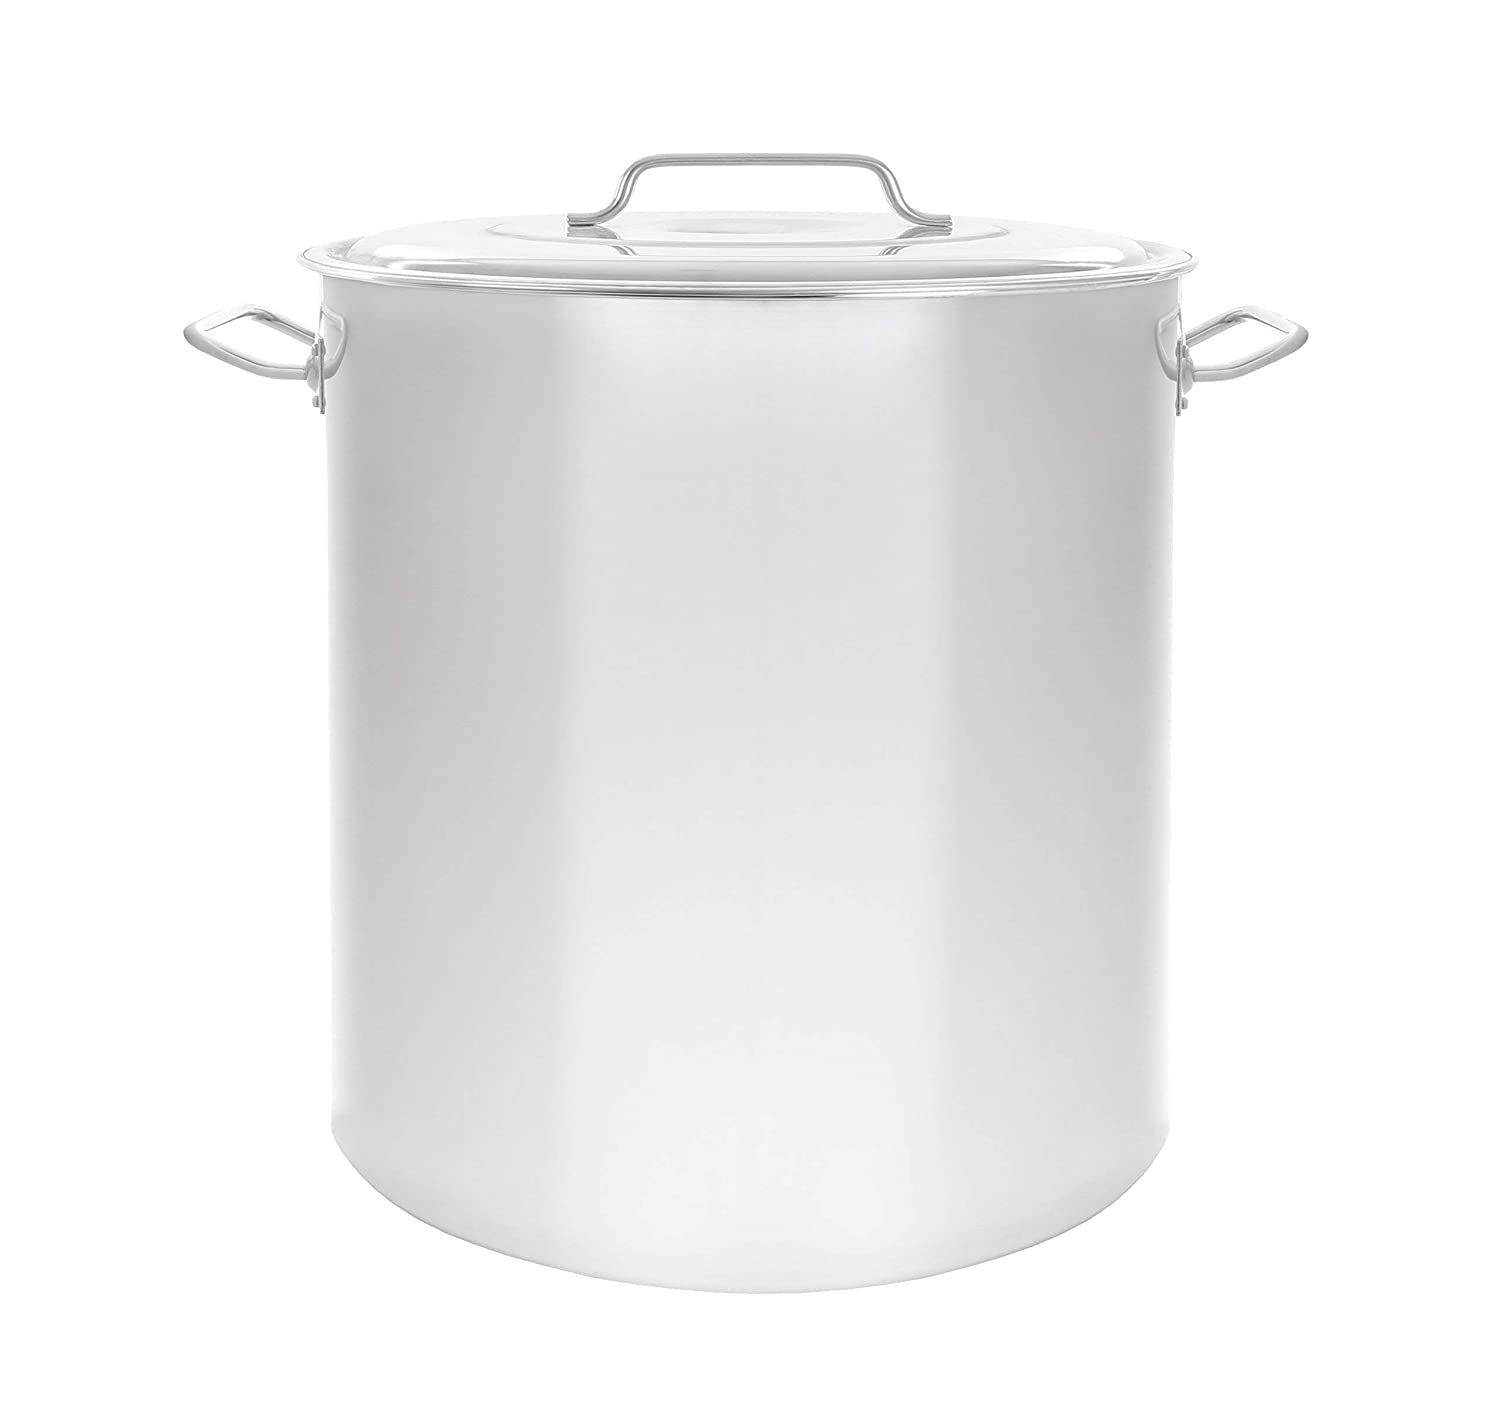 100-Quart Concord 120 Quart Stainless Steel Stock Pot Cookware